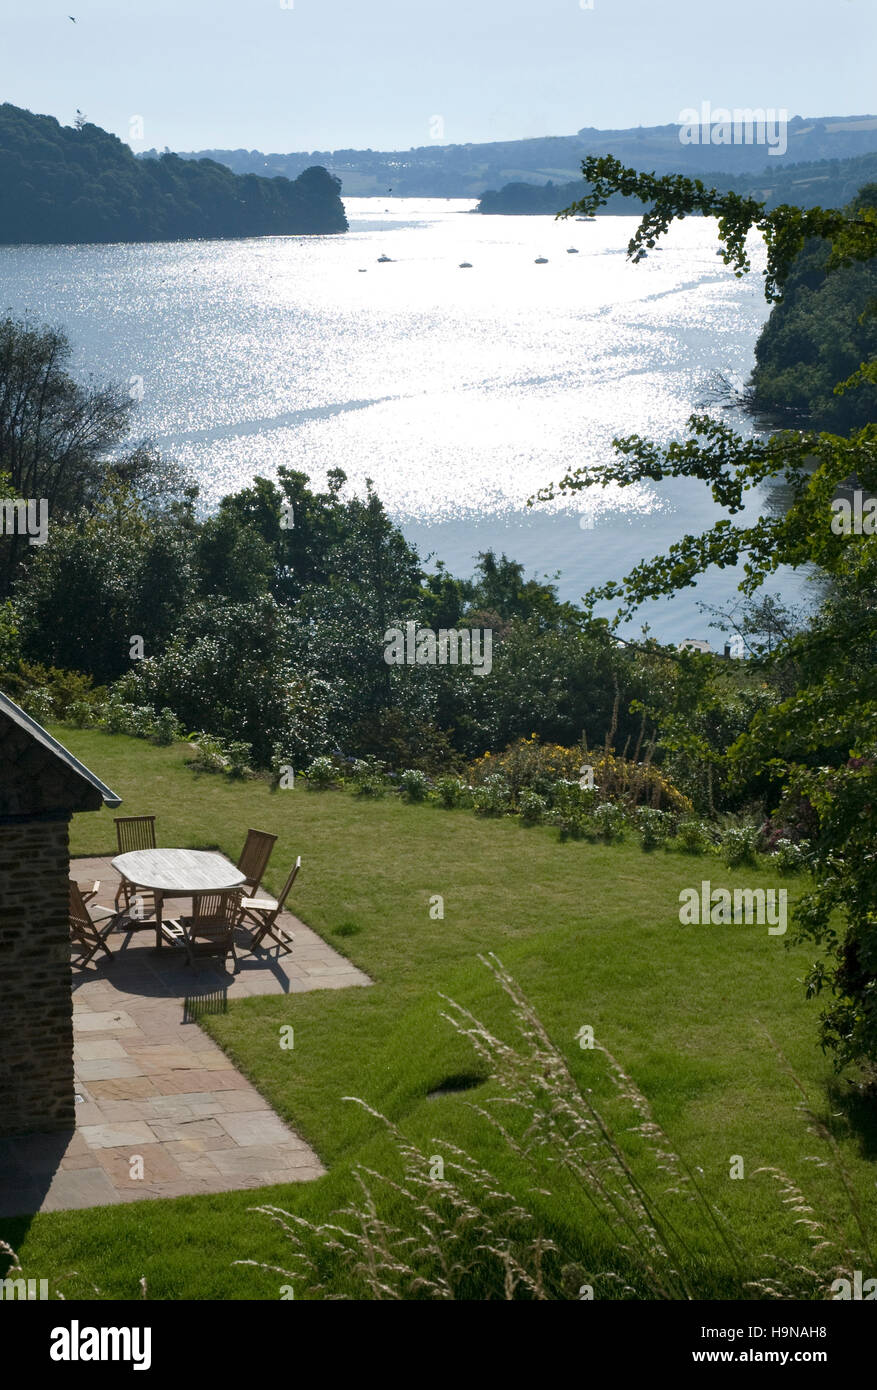 River view, estuary, water reflections, garden with furniture. sun on water Stock Photo